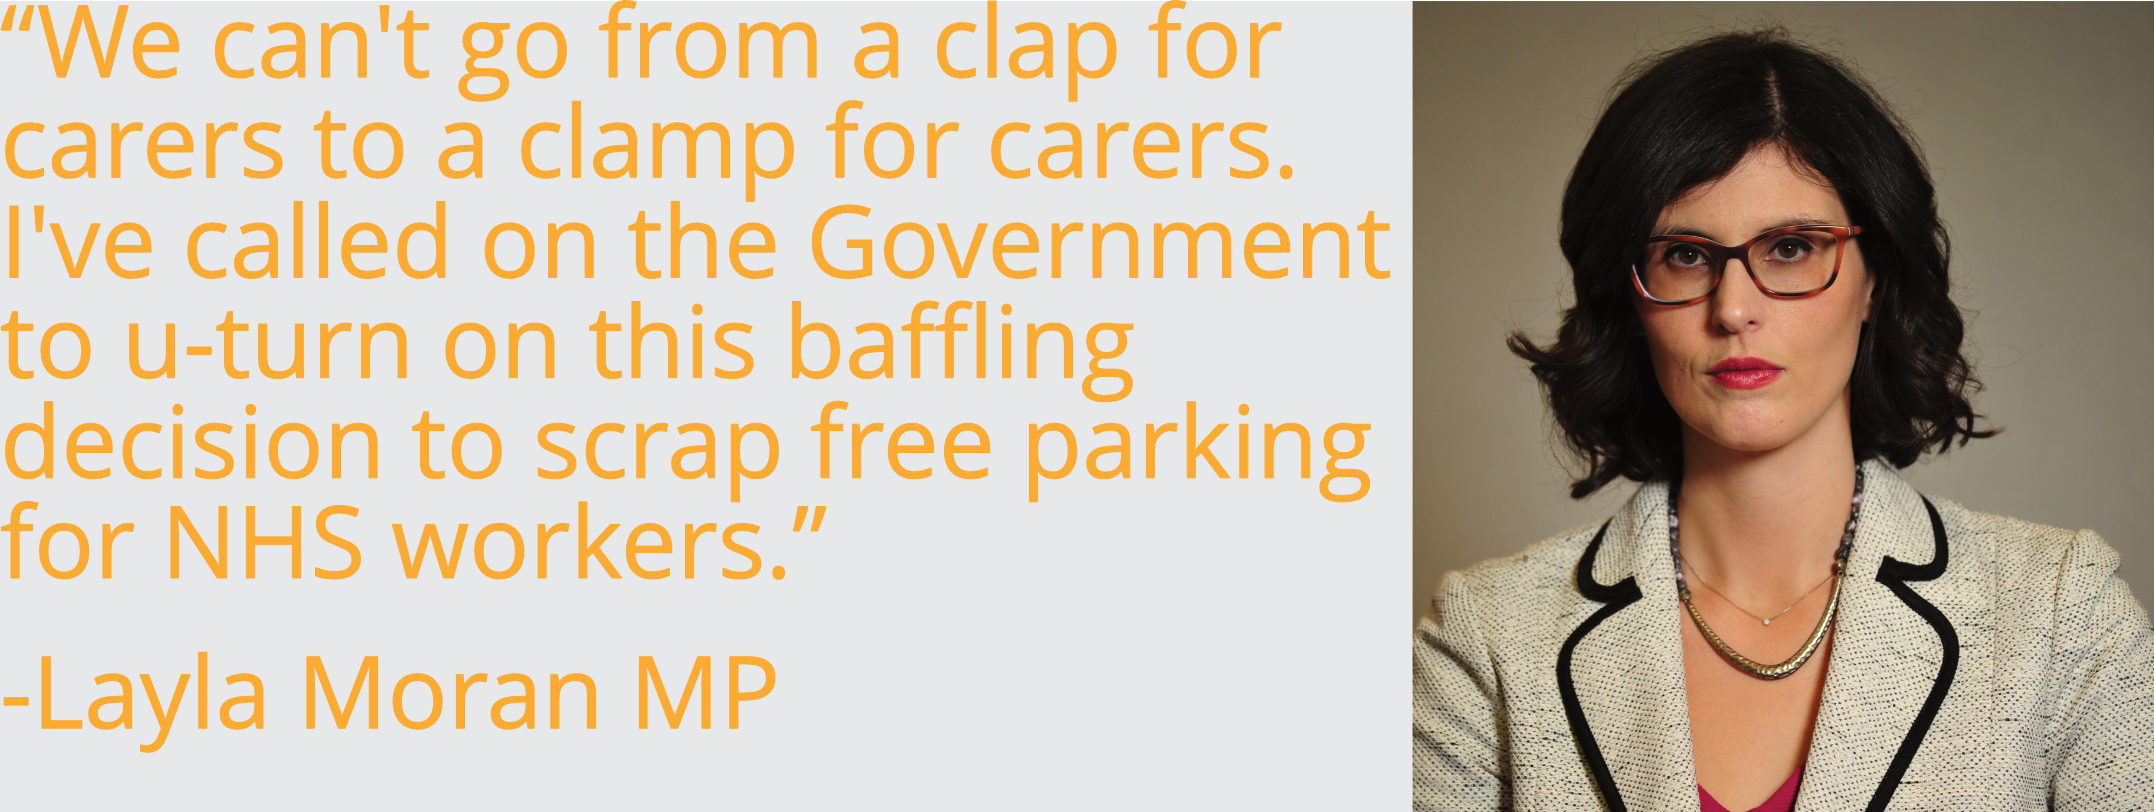 """We can't go from a clap for carers to a clamp for carers. I've called on the Government to u-turn on this baffling decision to scrap free parking for NHS workers."""